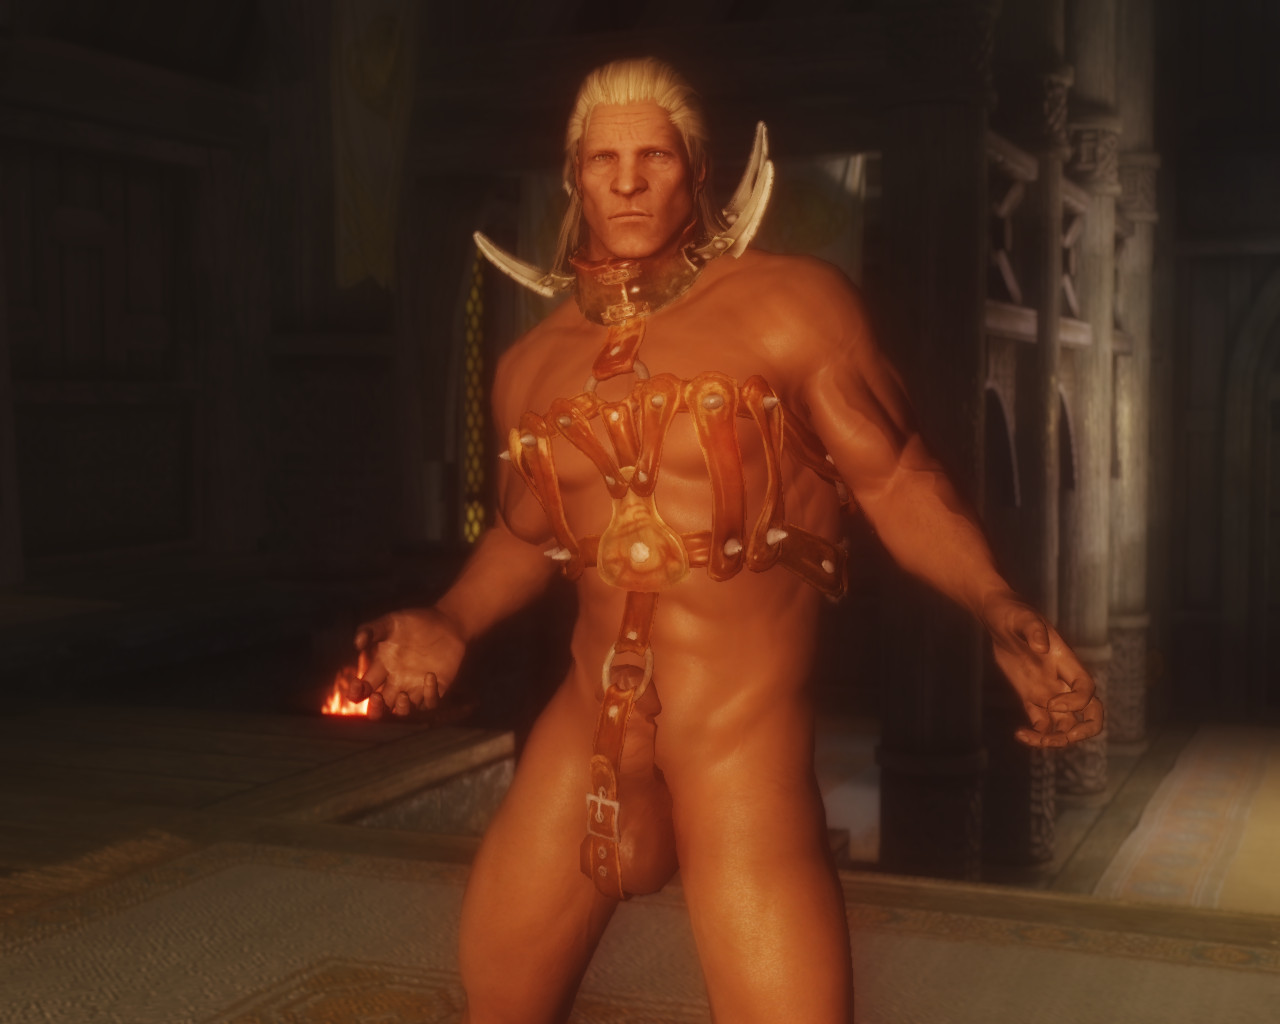 Elf men nude sexy image